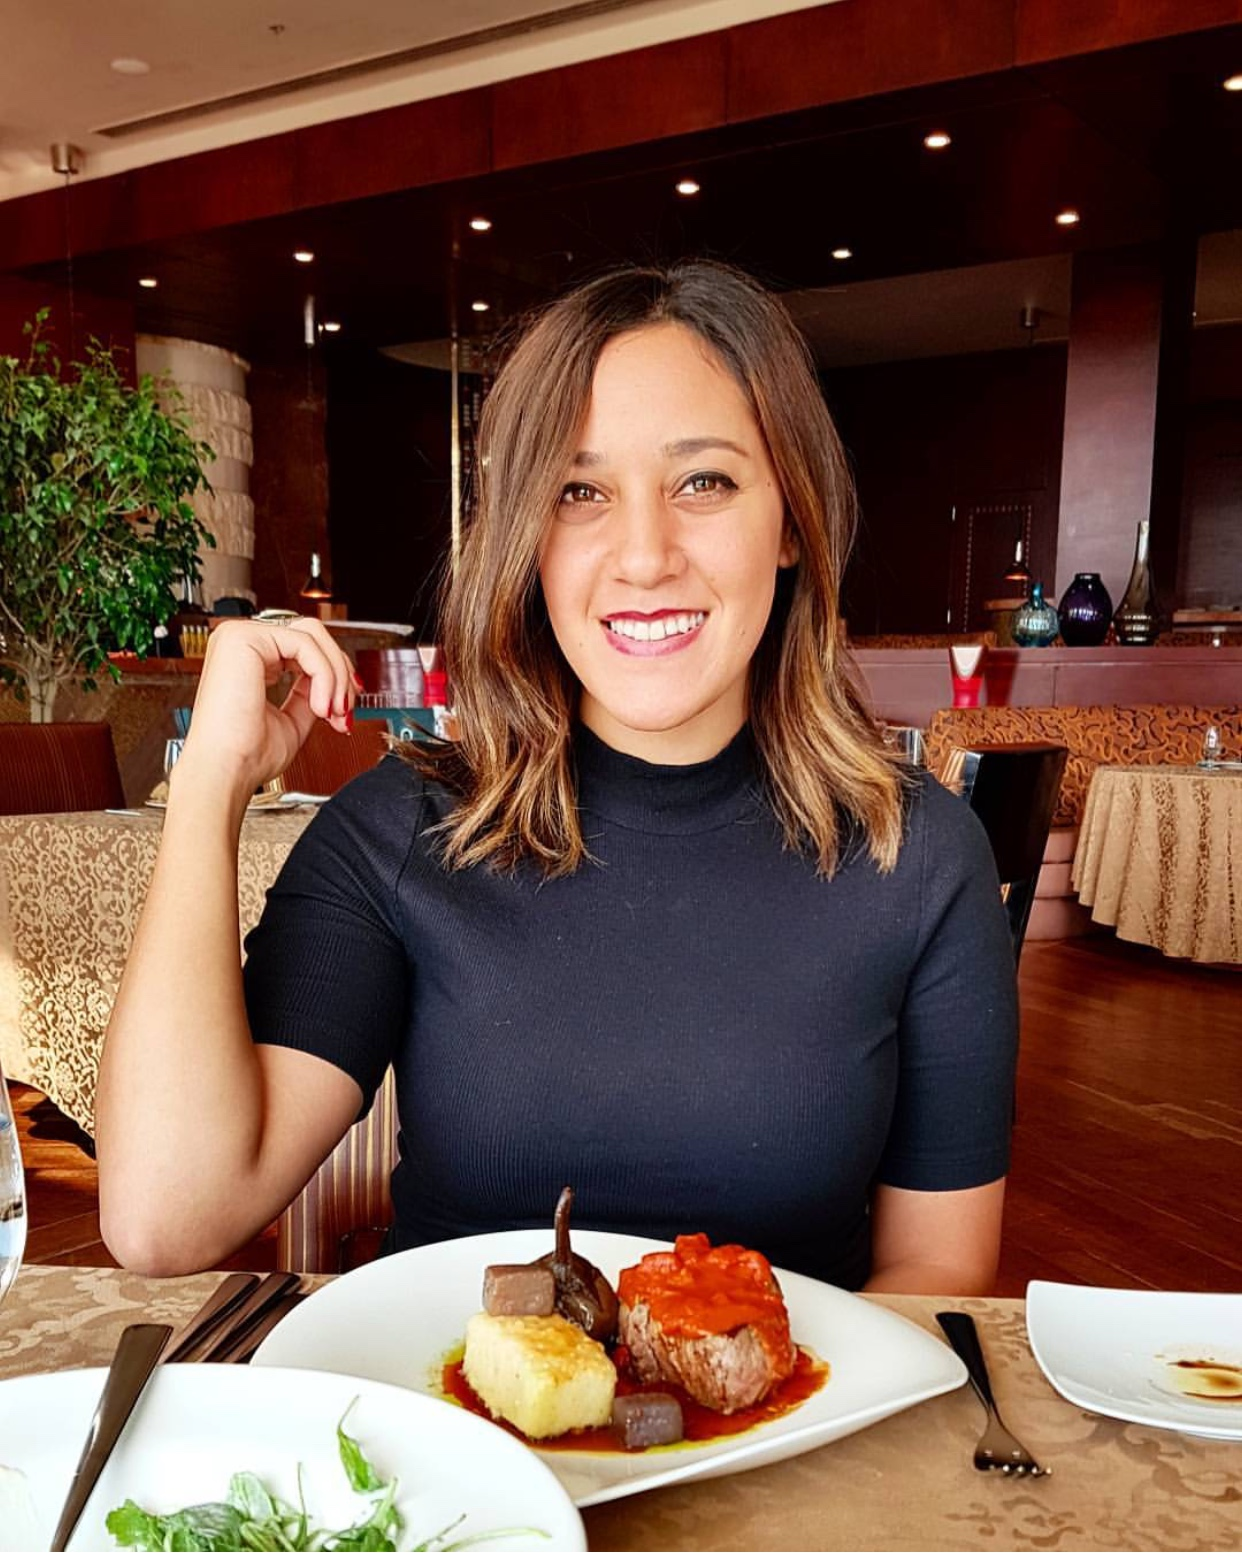 Eman Naguib Gives Us 5 Tips To Set Up The Perfect Thanksgiving Dinner